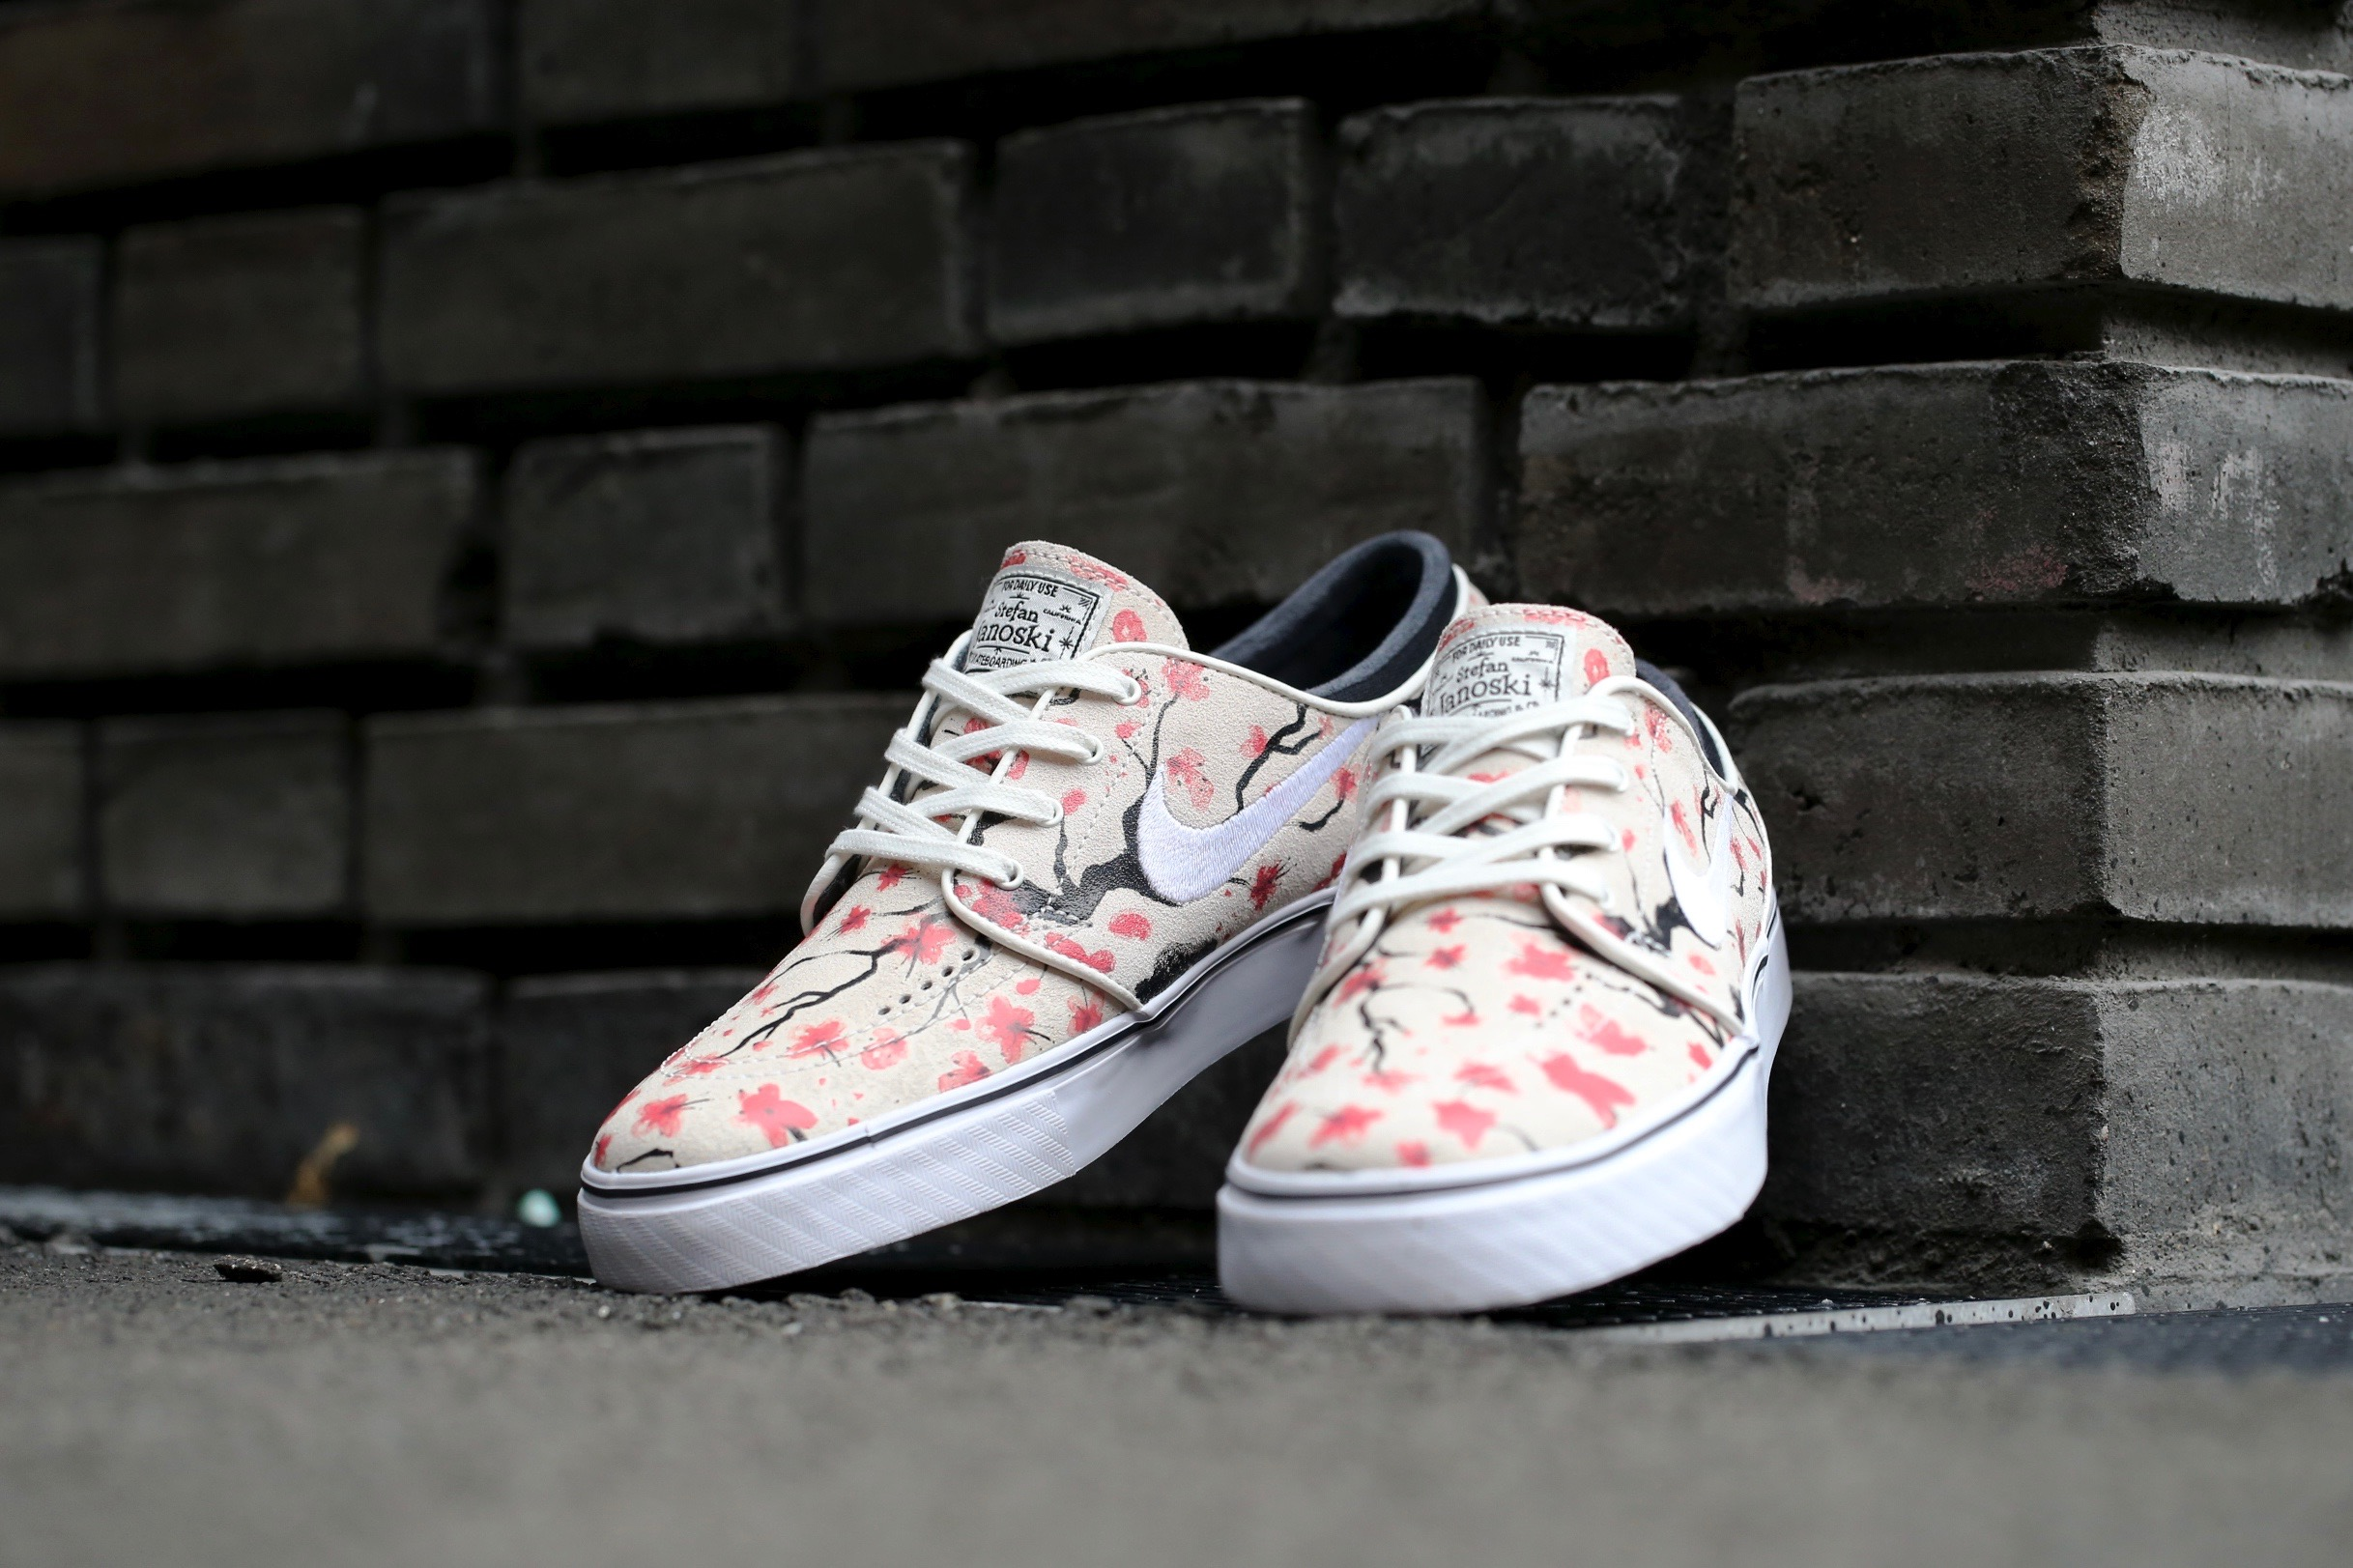 nike sb zoom stefan janoski elite cherry blossom pack. Black Bedroom Furniture Sets. Home Design Ideas